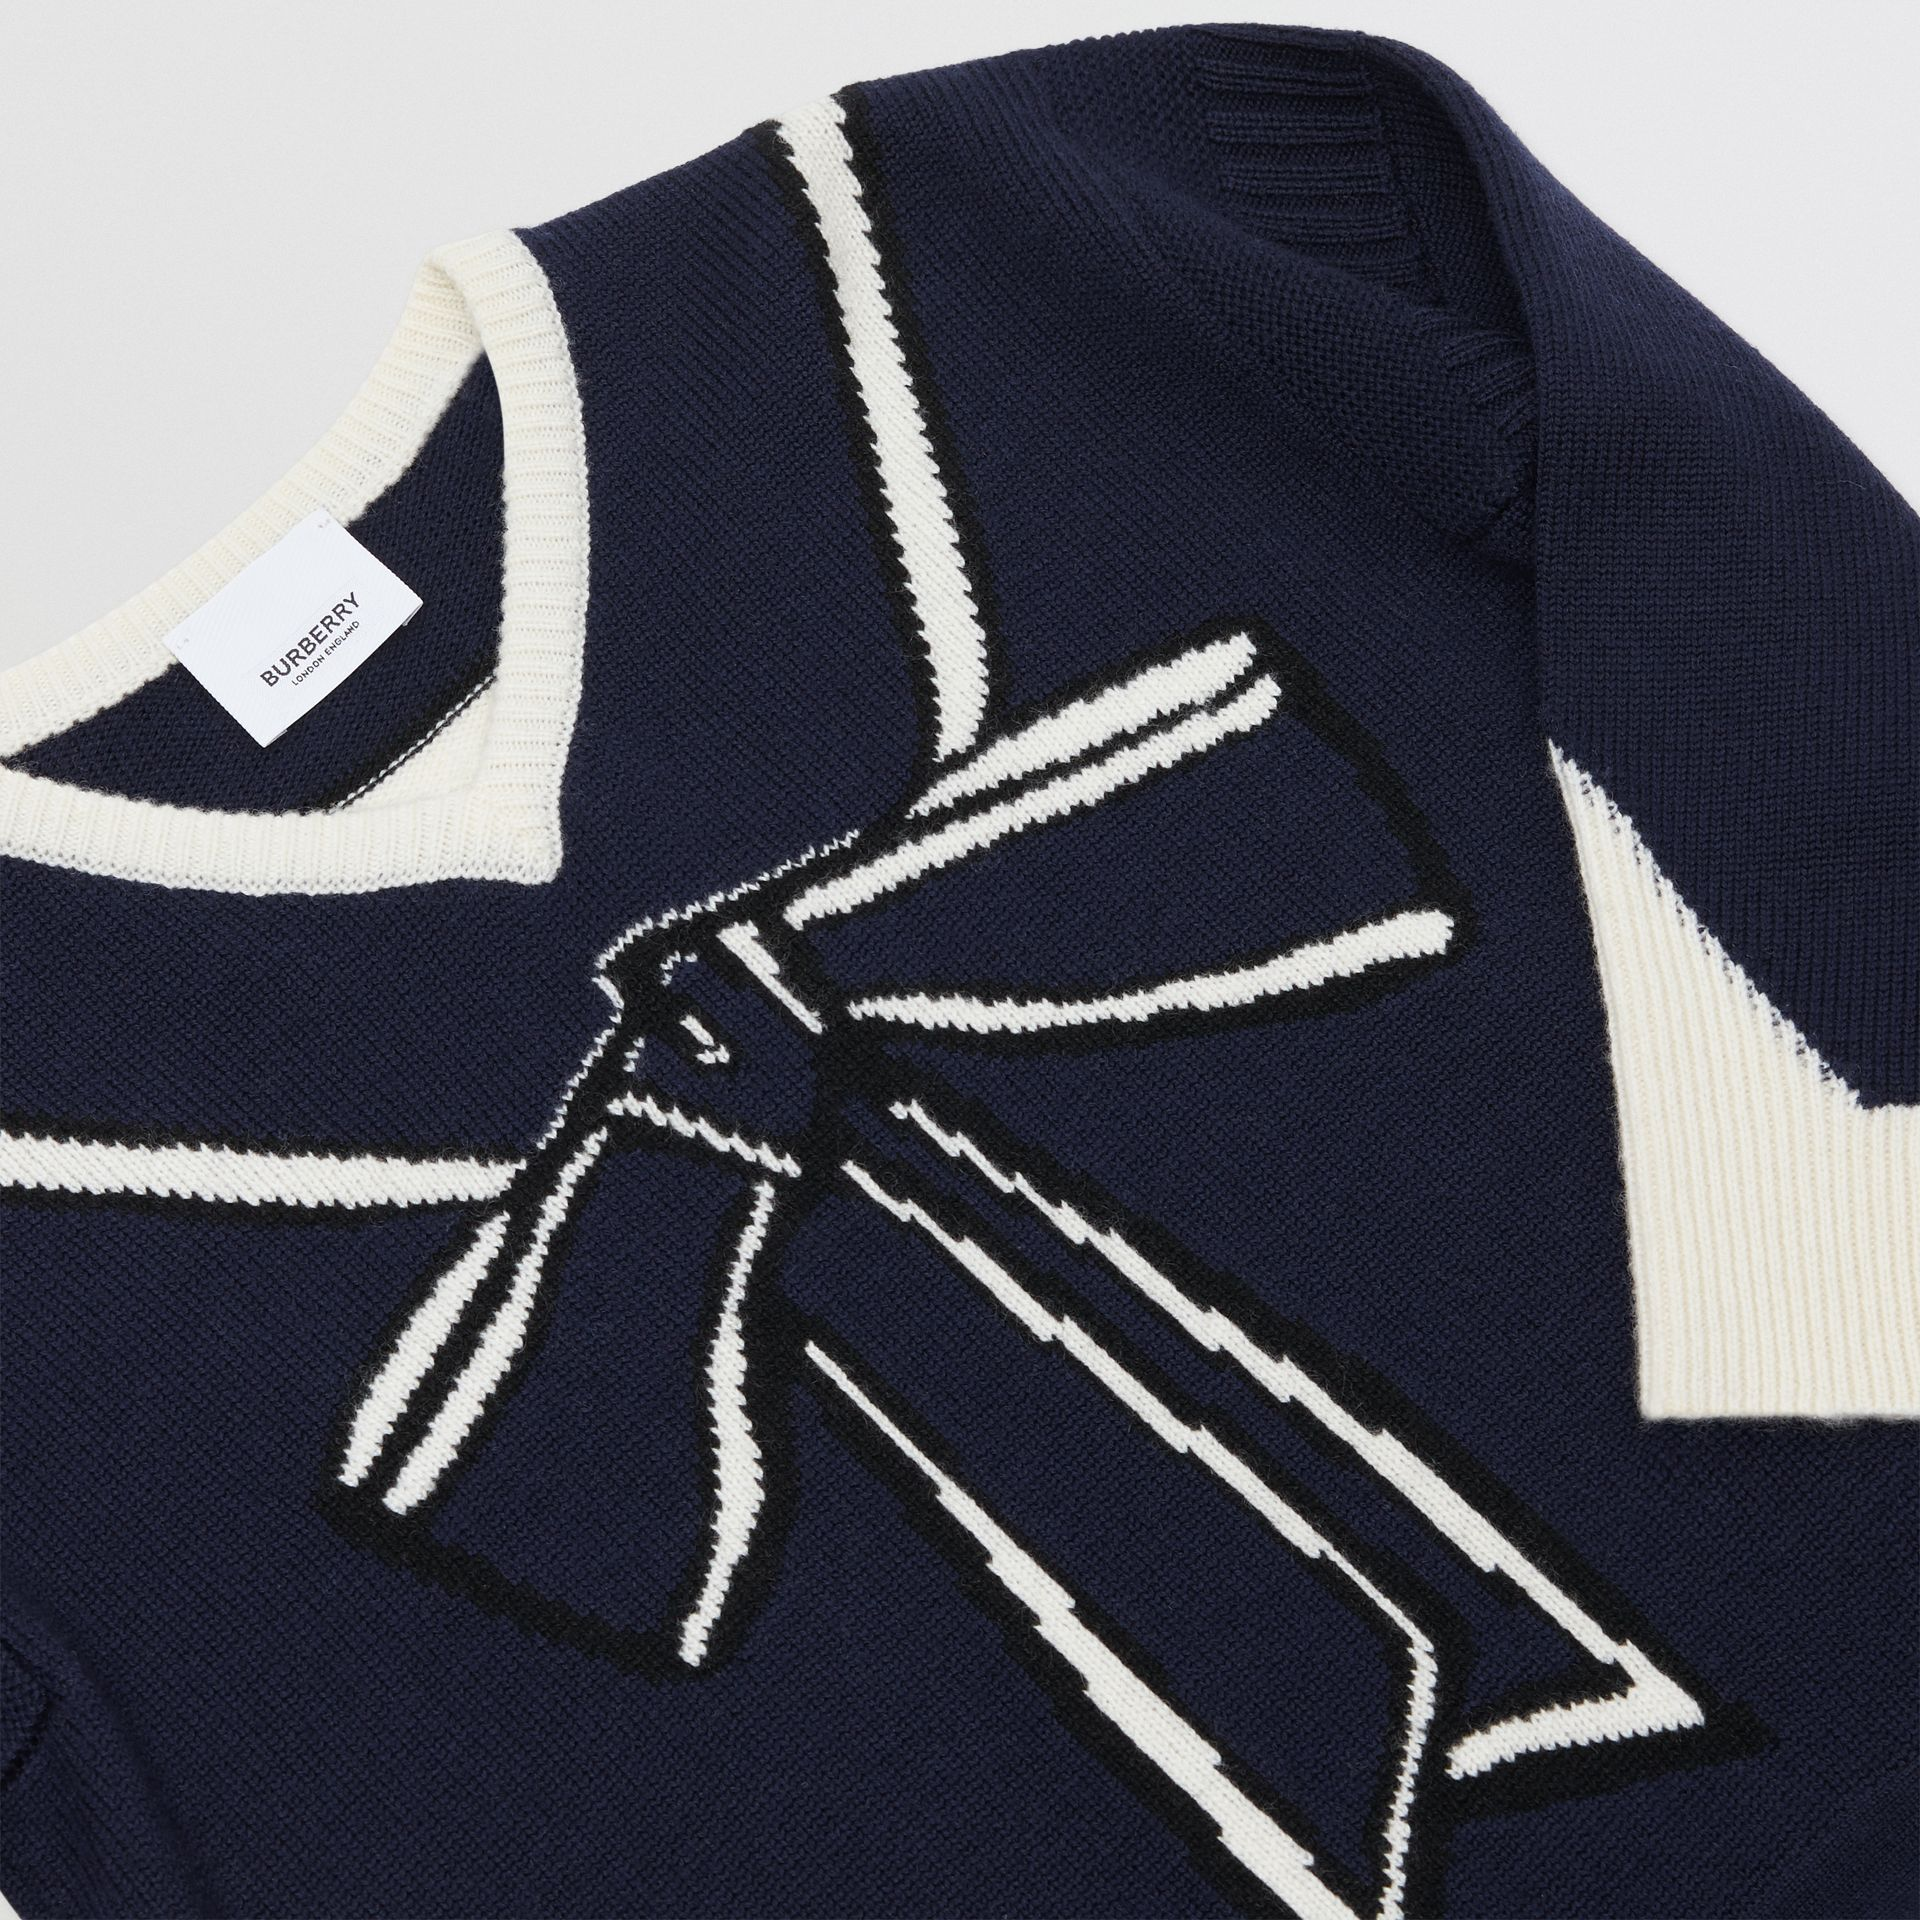 Trompe L'Oeil Intarsia Wool Cashmere Dress in Navy | Burberry - gallery image 1